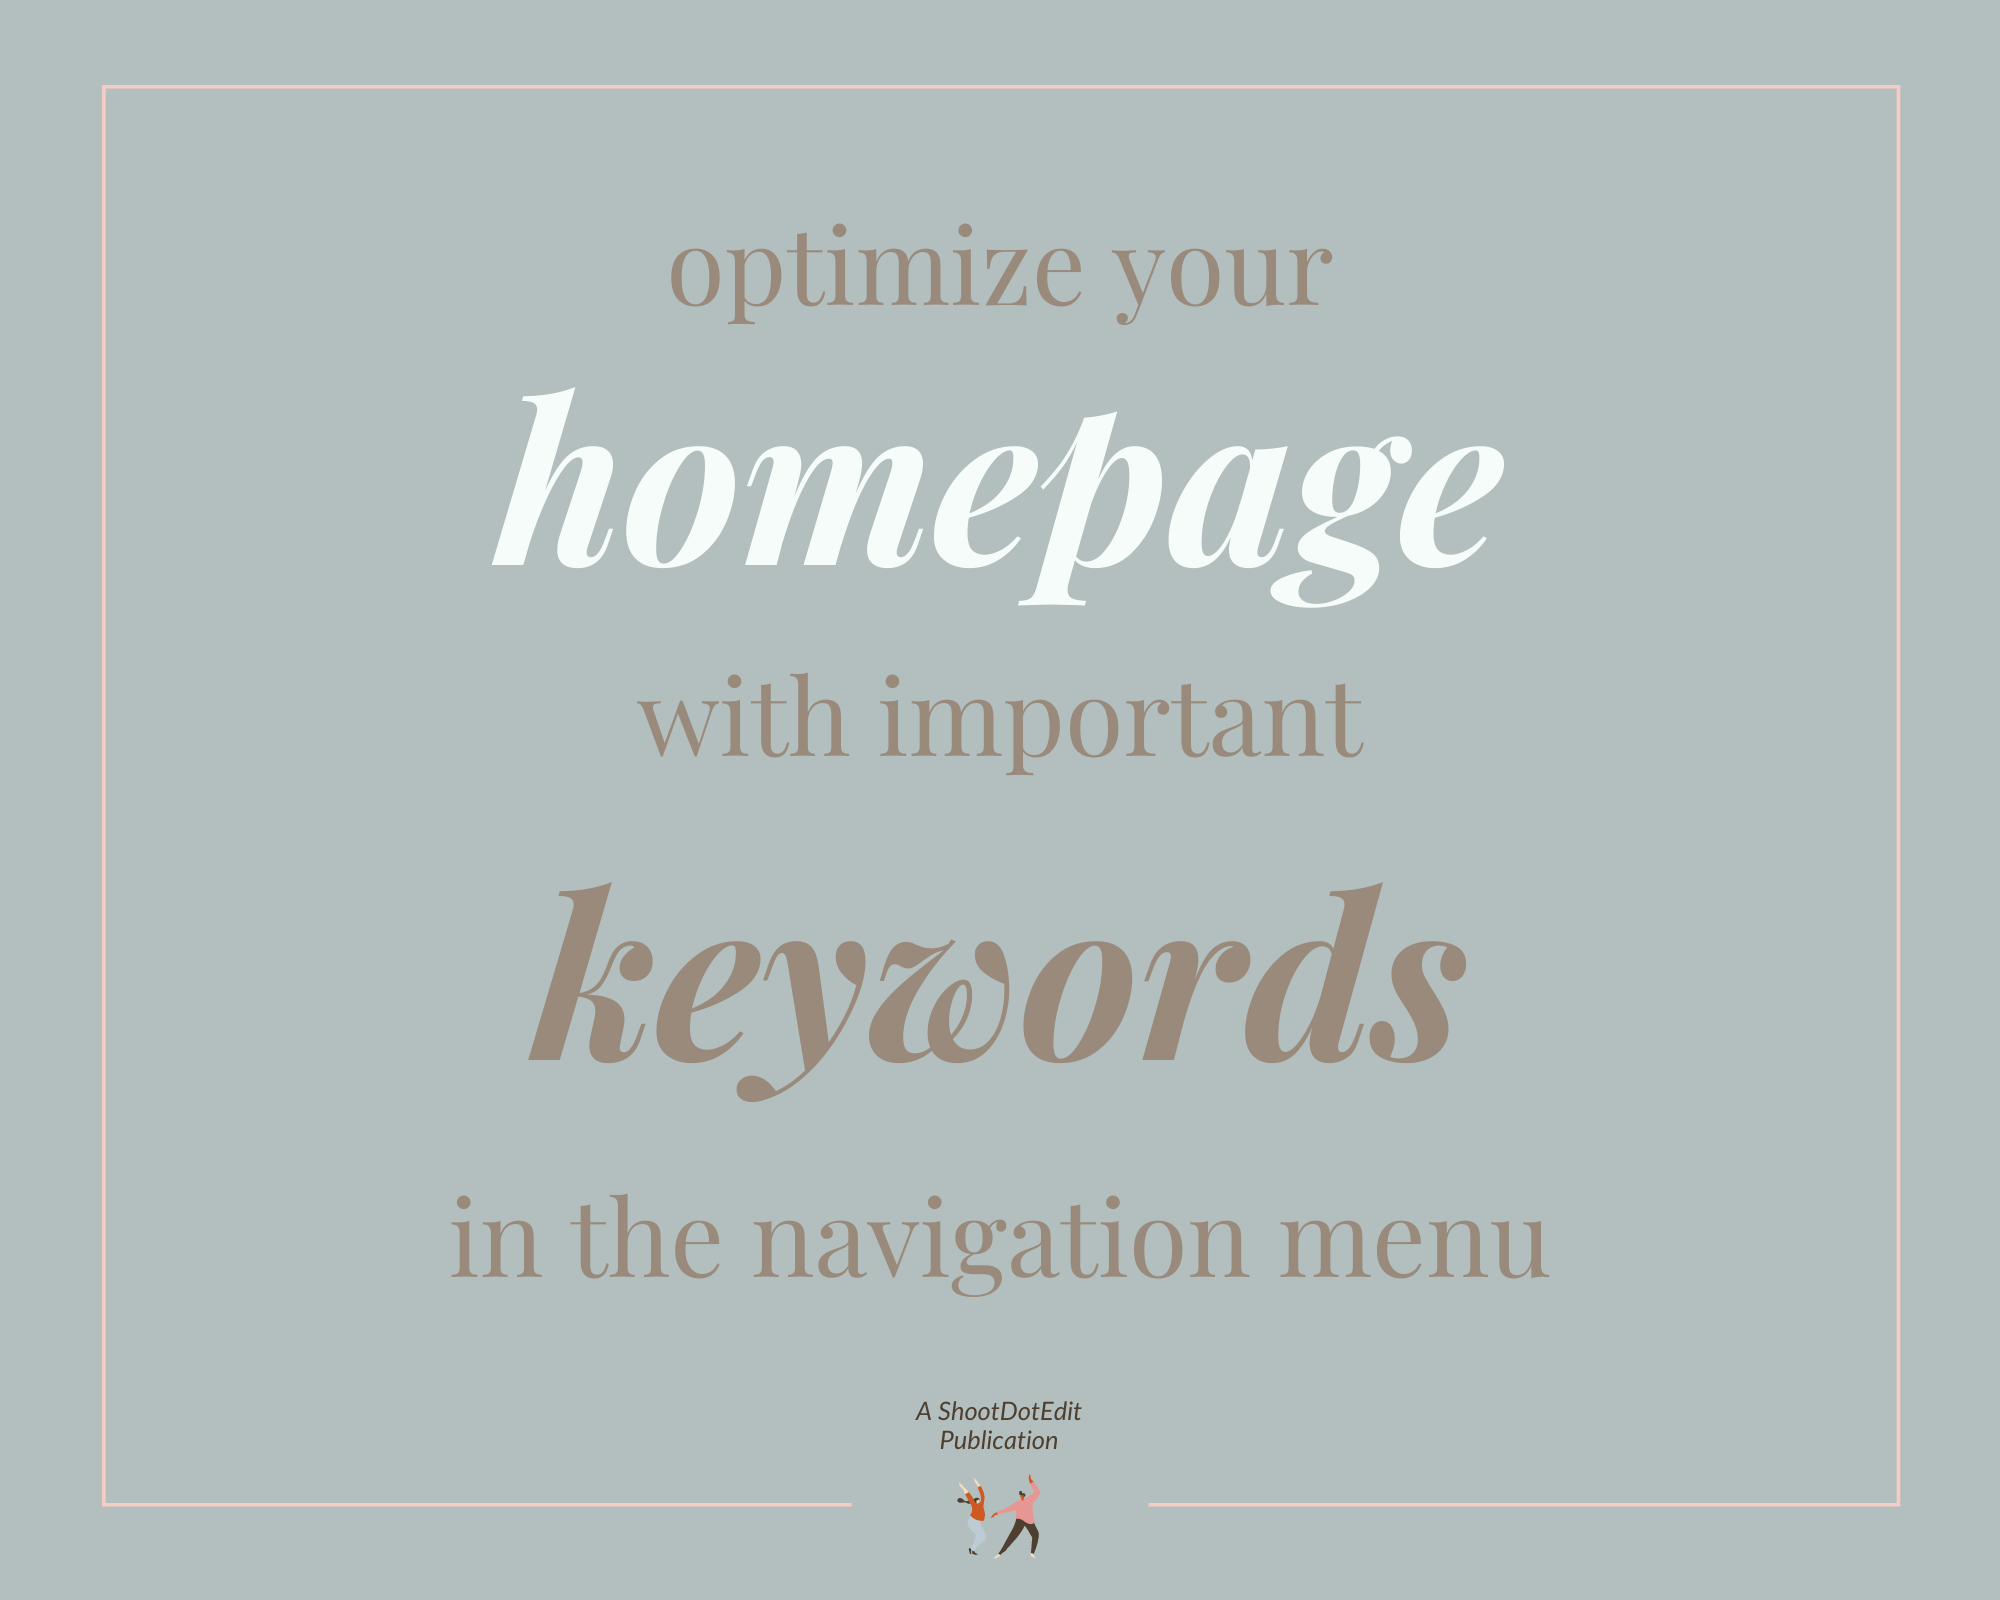 Infographic stating optimize your homepage with important keywords in the navigation menu